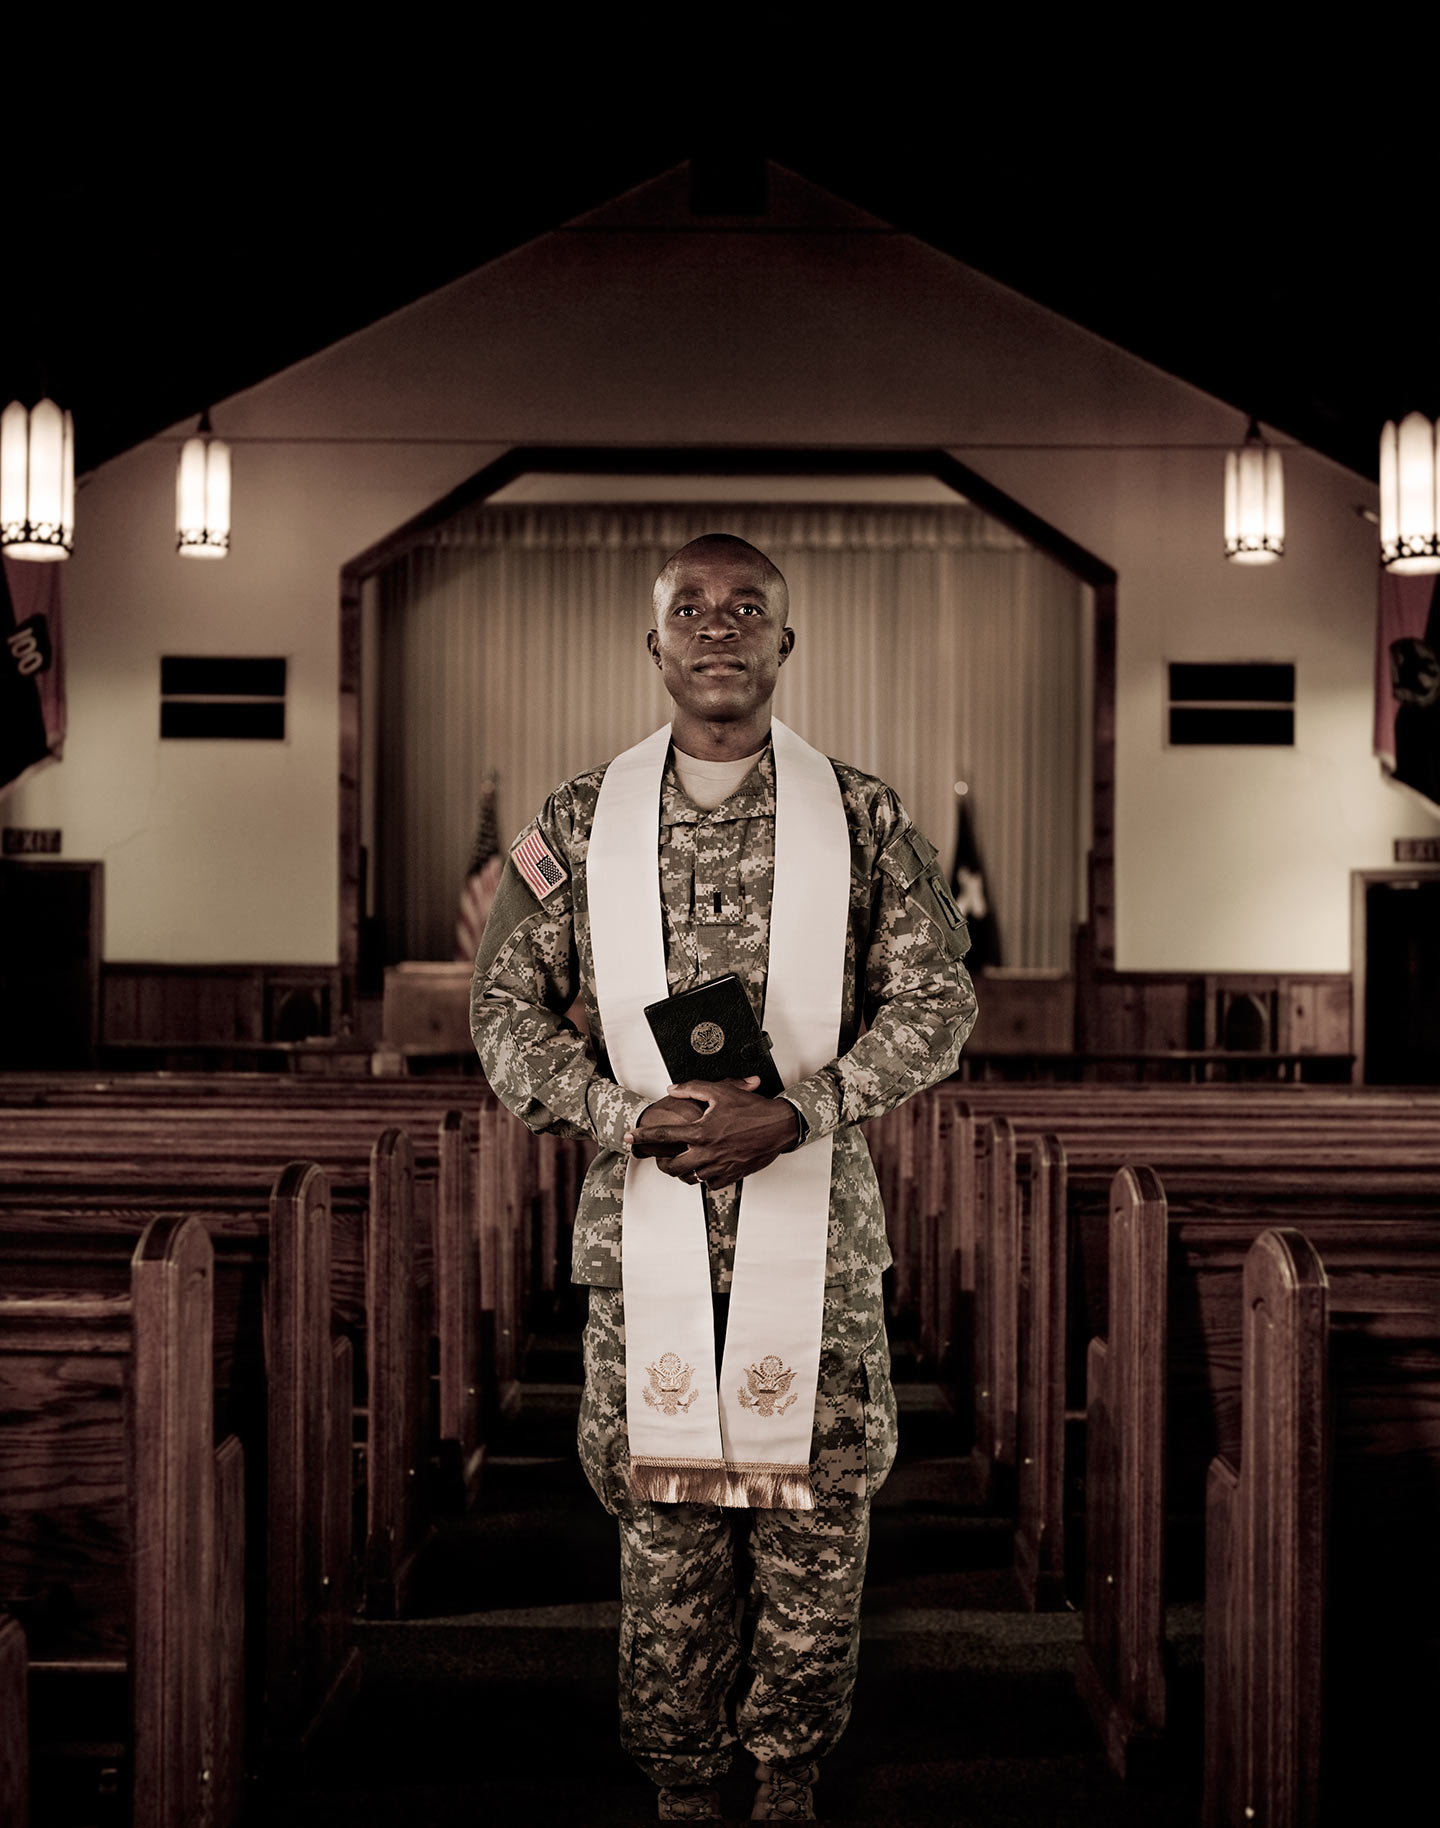 Rod Mclean - US army priest